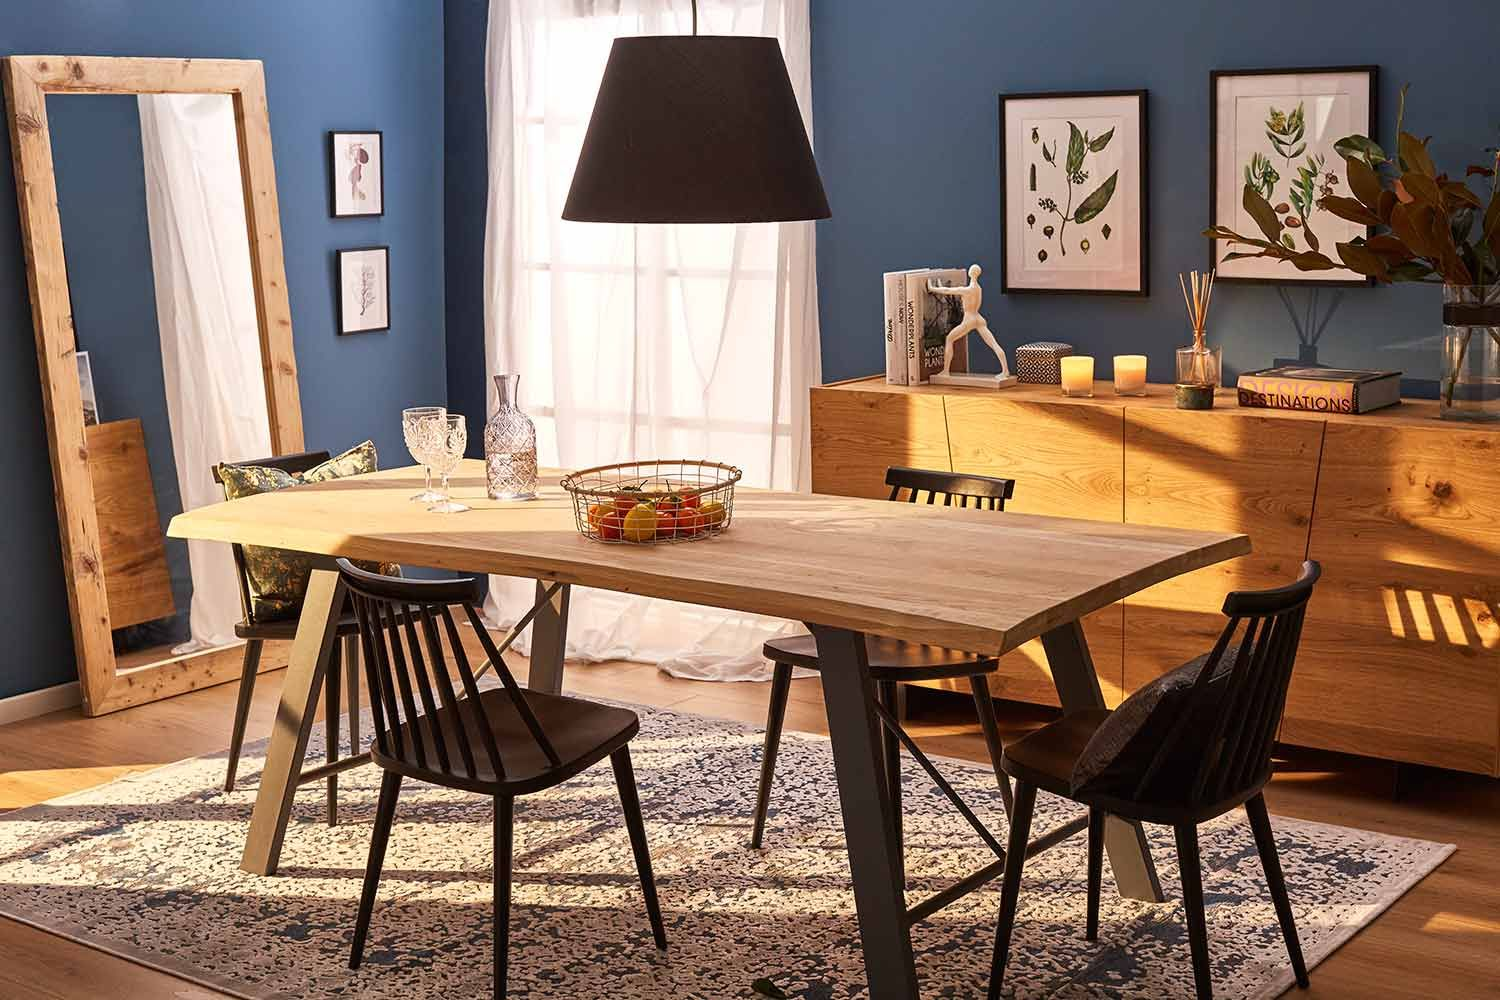 1928 Arredamento Made in Italy WESTWING